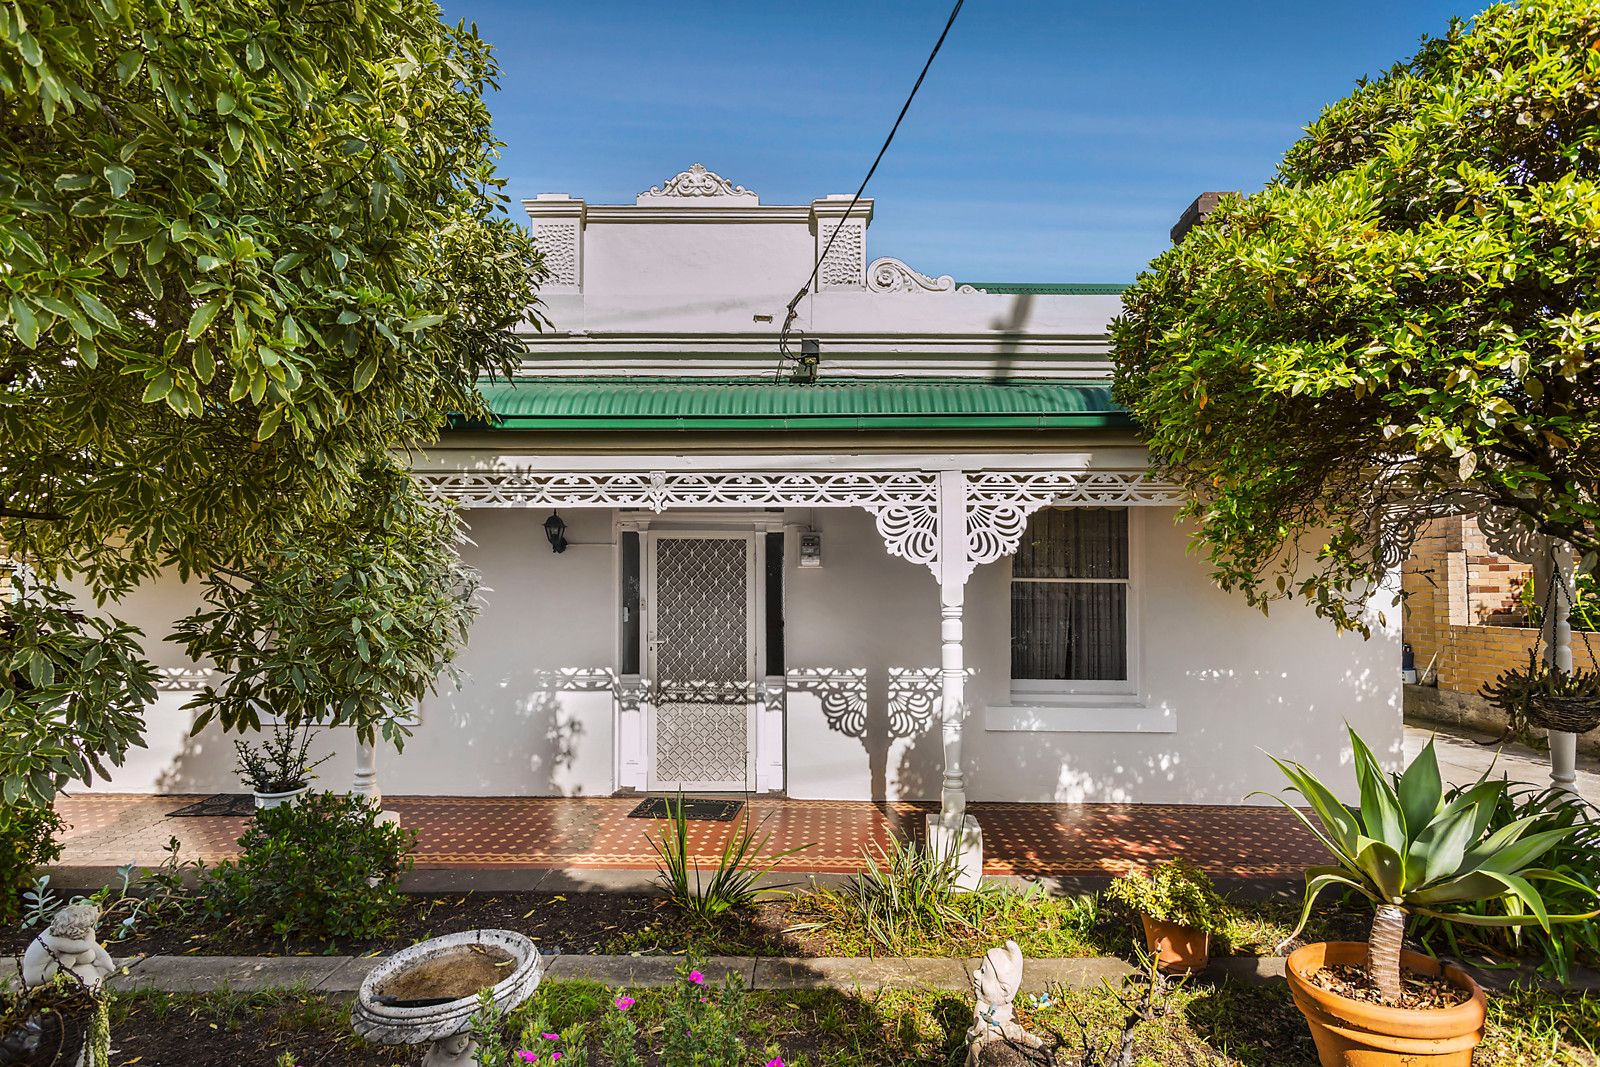 221 Ascot Vale Road, Ascot Vale VIC 3032, Image 0